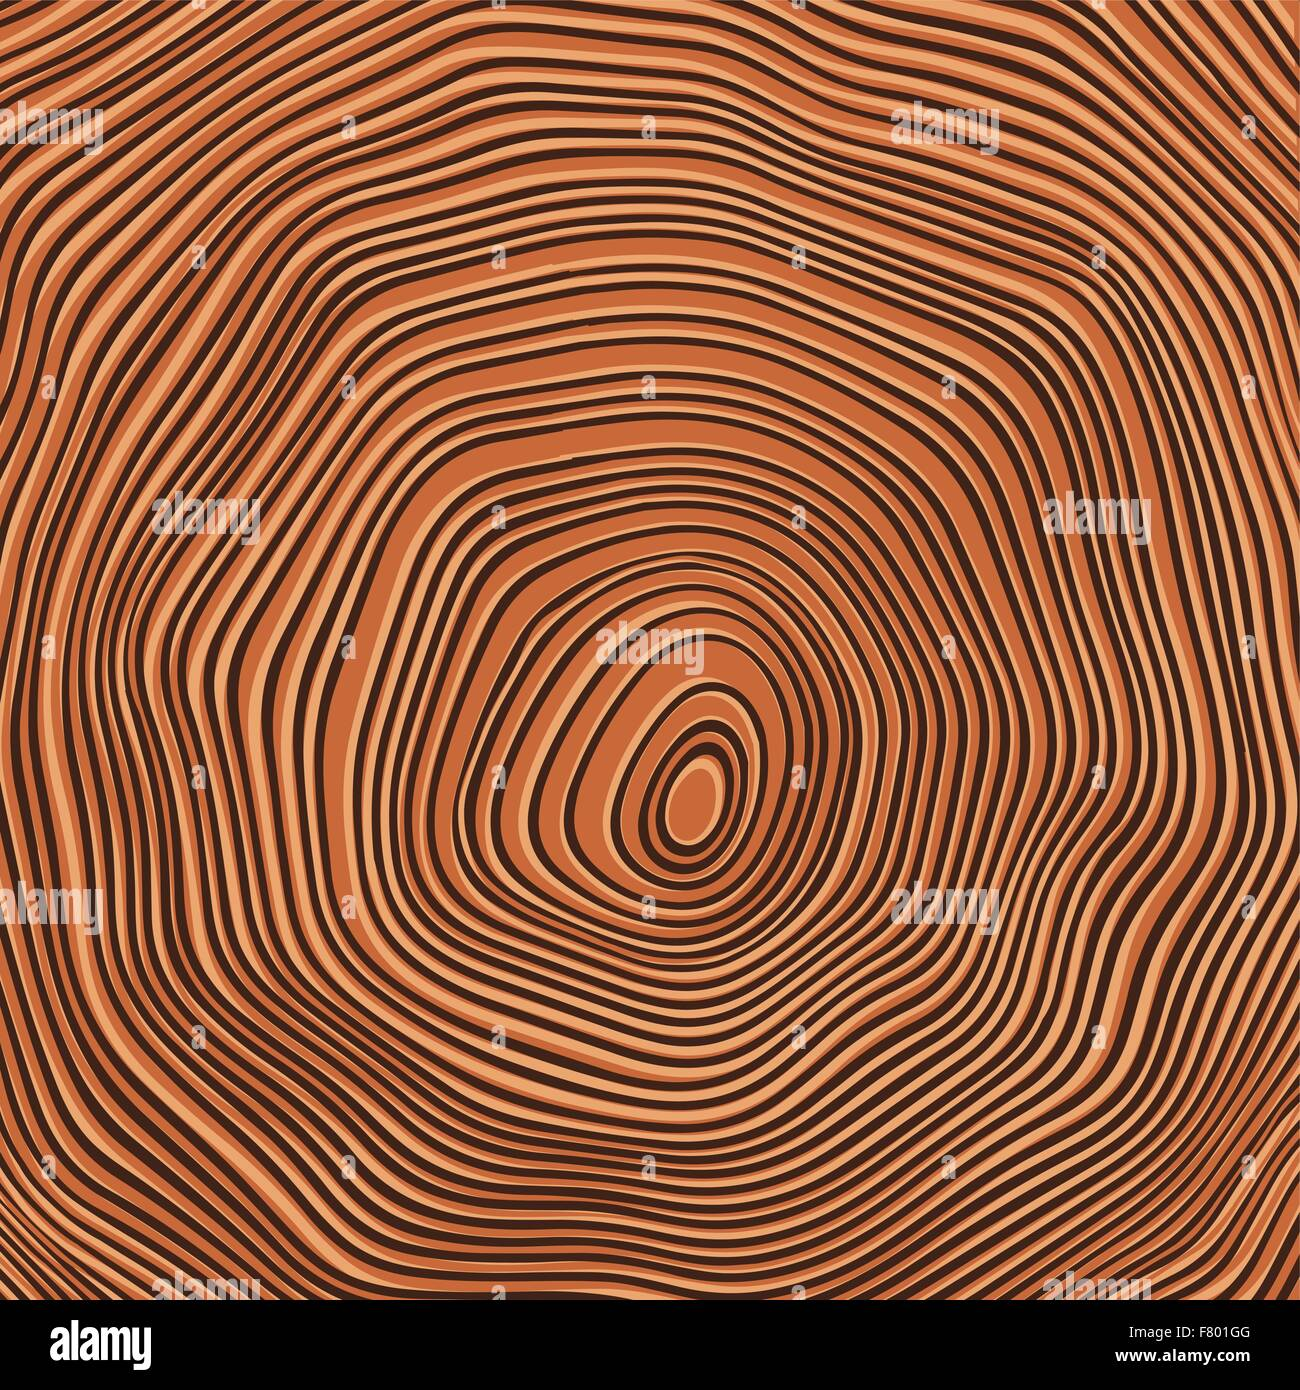 Tree rings background illustration. Color version - Stock Image